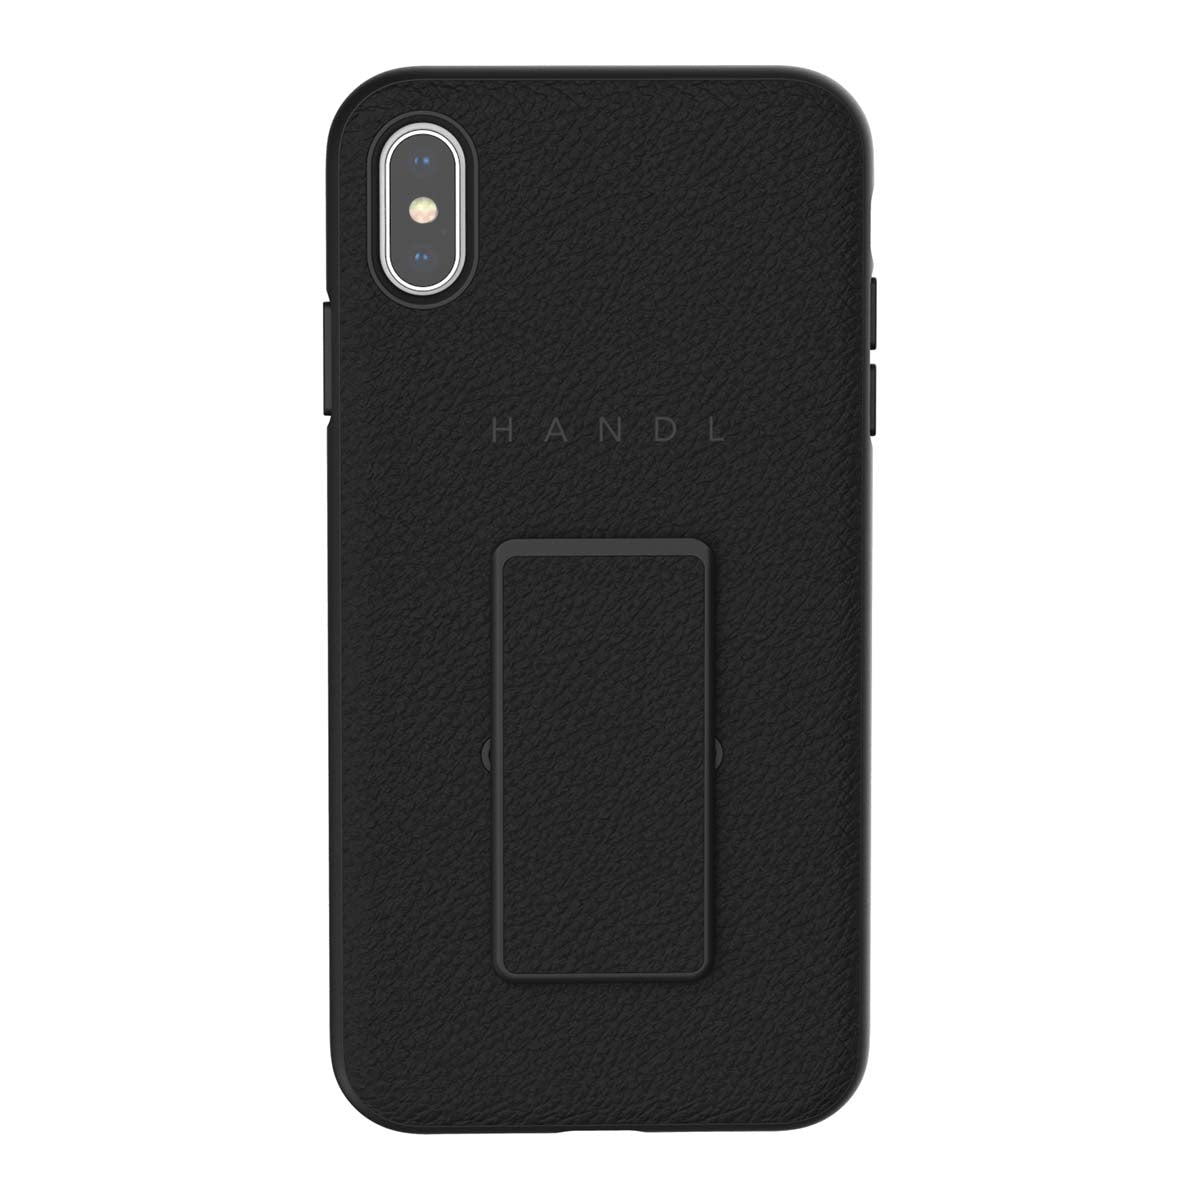 HANDL_iPhoneXsMAX_PEBBLE_LEATHER_BLACK.75.jpg